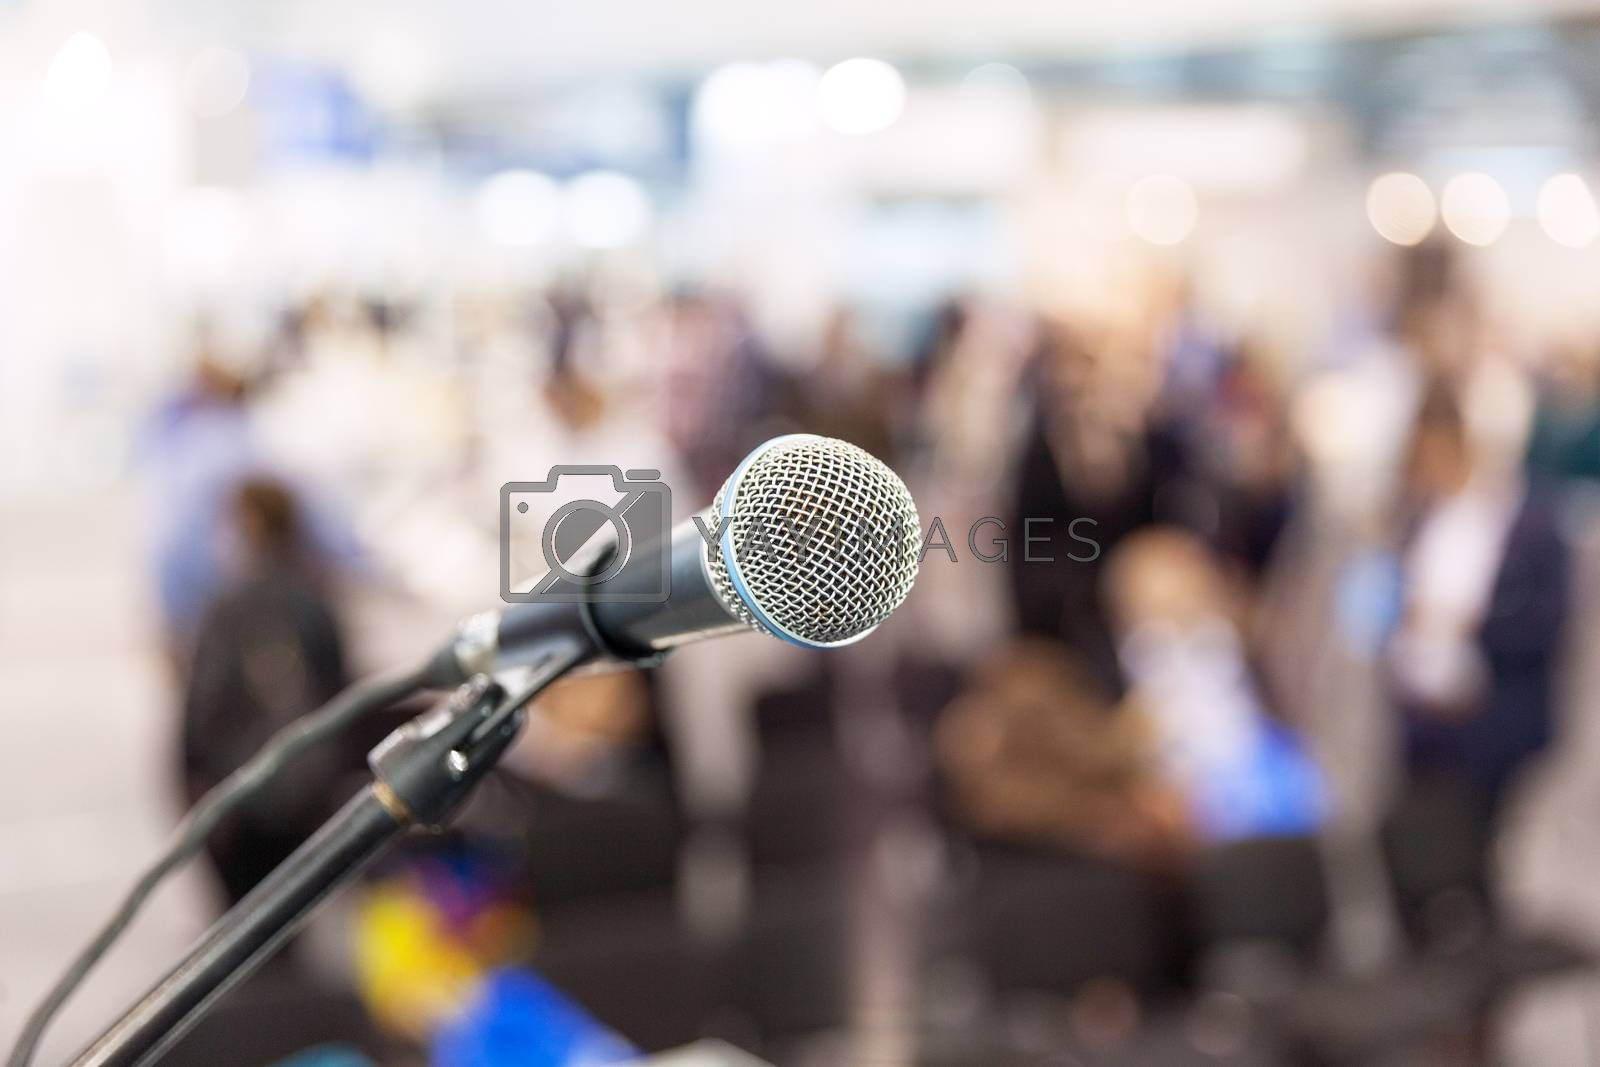 Microphone in focus against blurred people. Press conference.